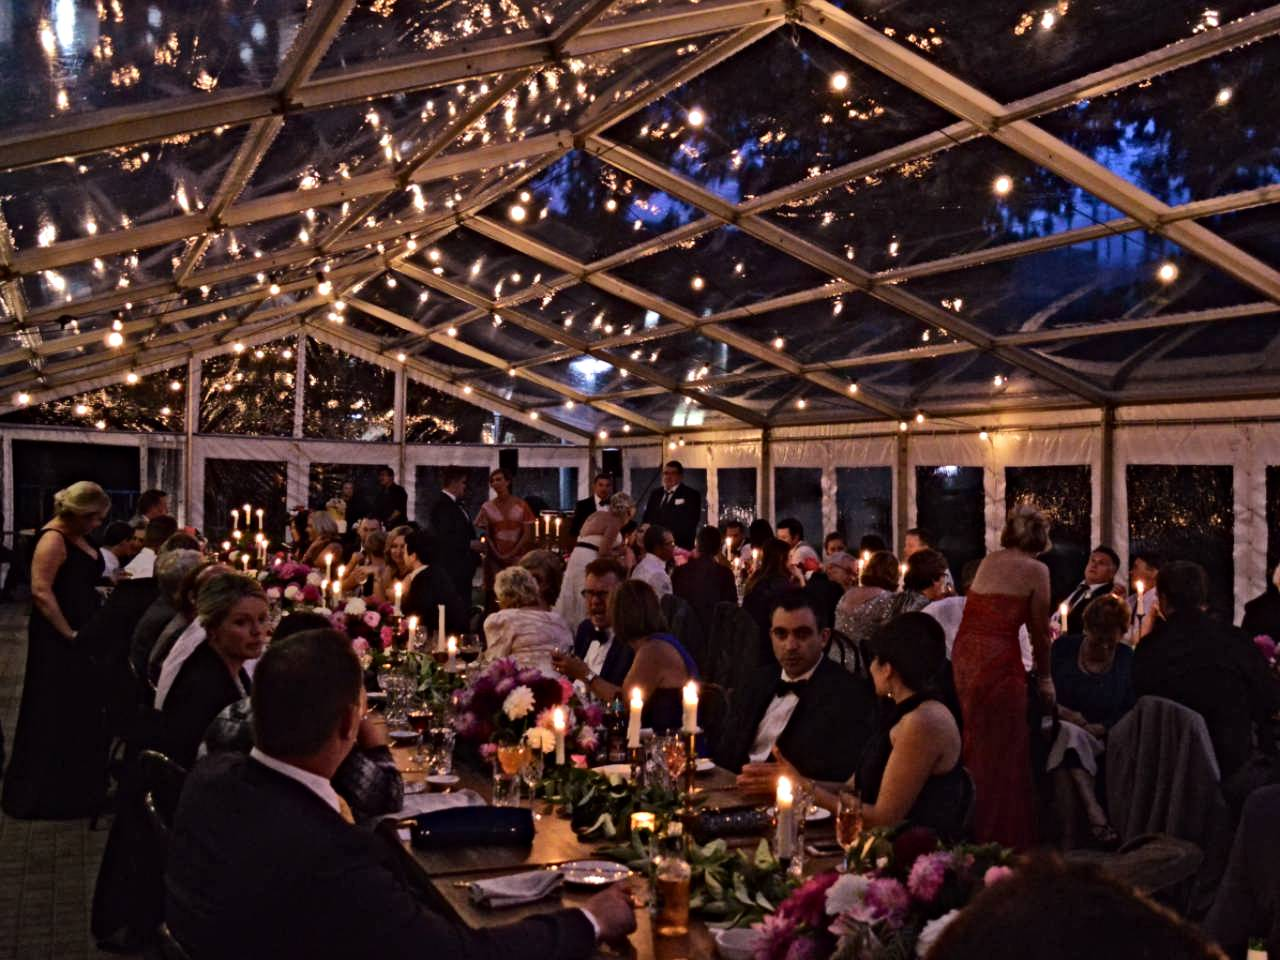 The Marquee With Guests Eating And Talking With Fairylights All Over The Celling.